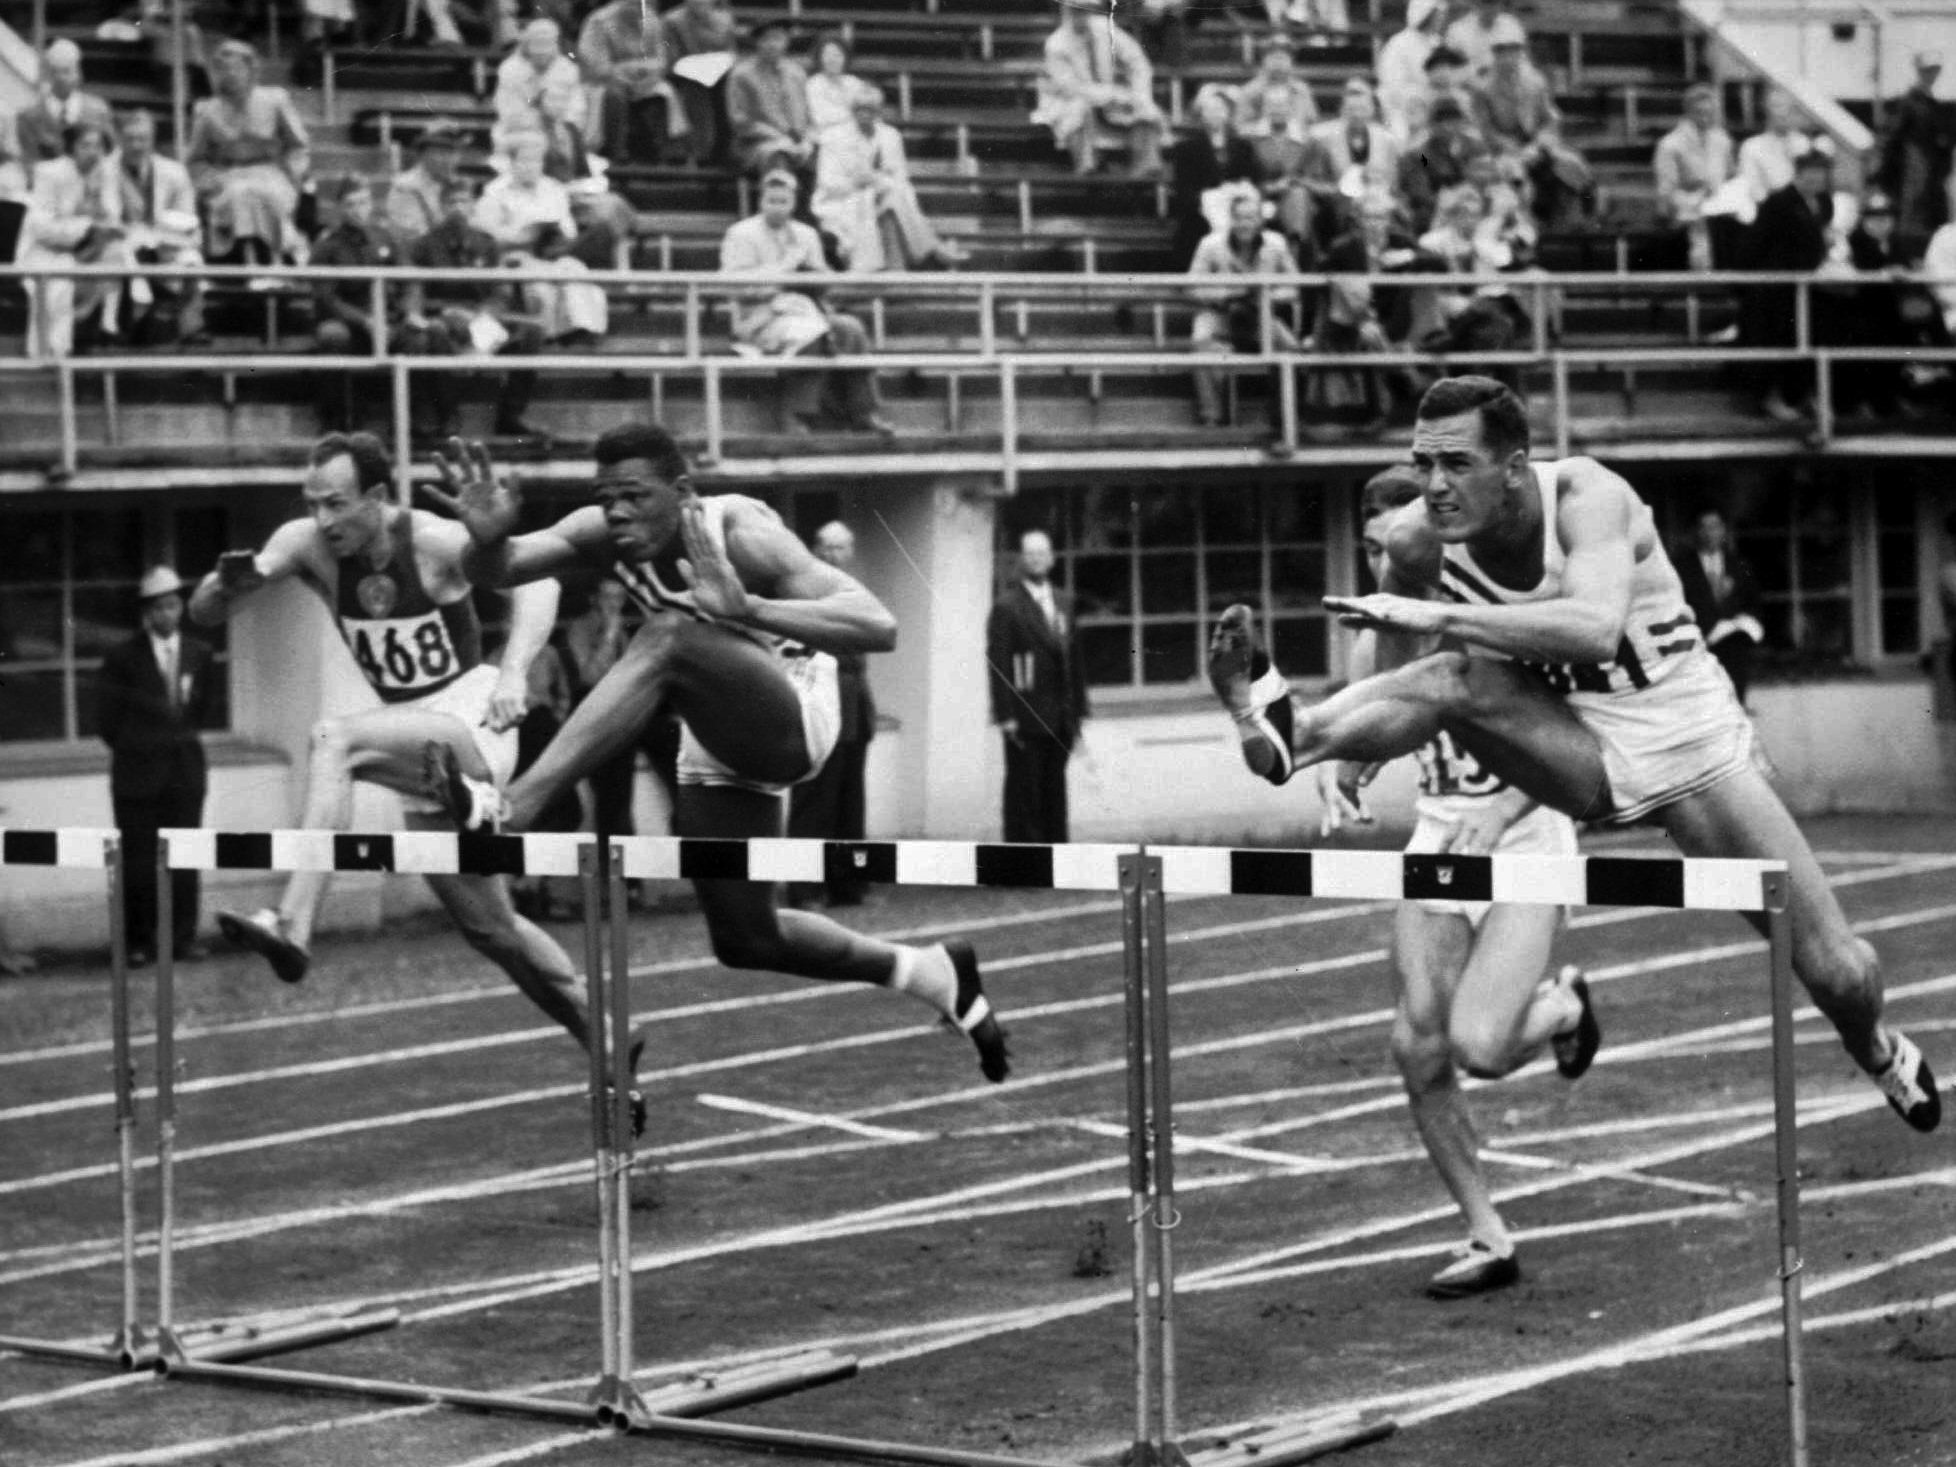 Helsinki, 1952: Team USA's Milt Campbell, centre, won the fifth heat of the 110-metre hurdles event in the Olympic decathlon. Campbell, who became the first black person to win the Olympic decathlon in 1956 and later became a motivational speaker, died in 2012 after a battle with prostate cancer. He was 78.